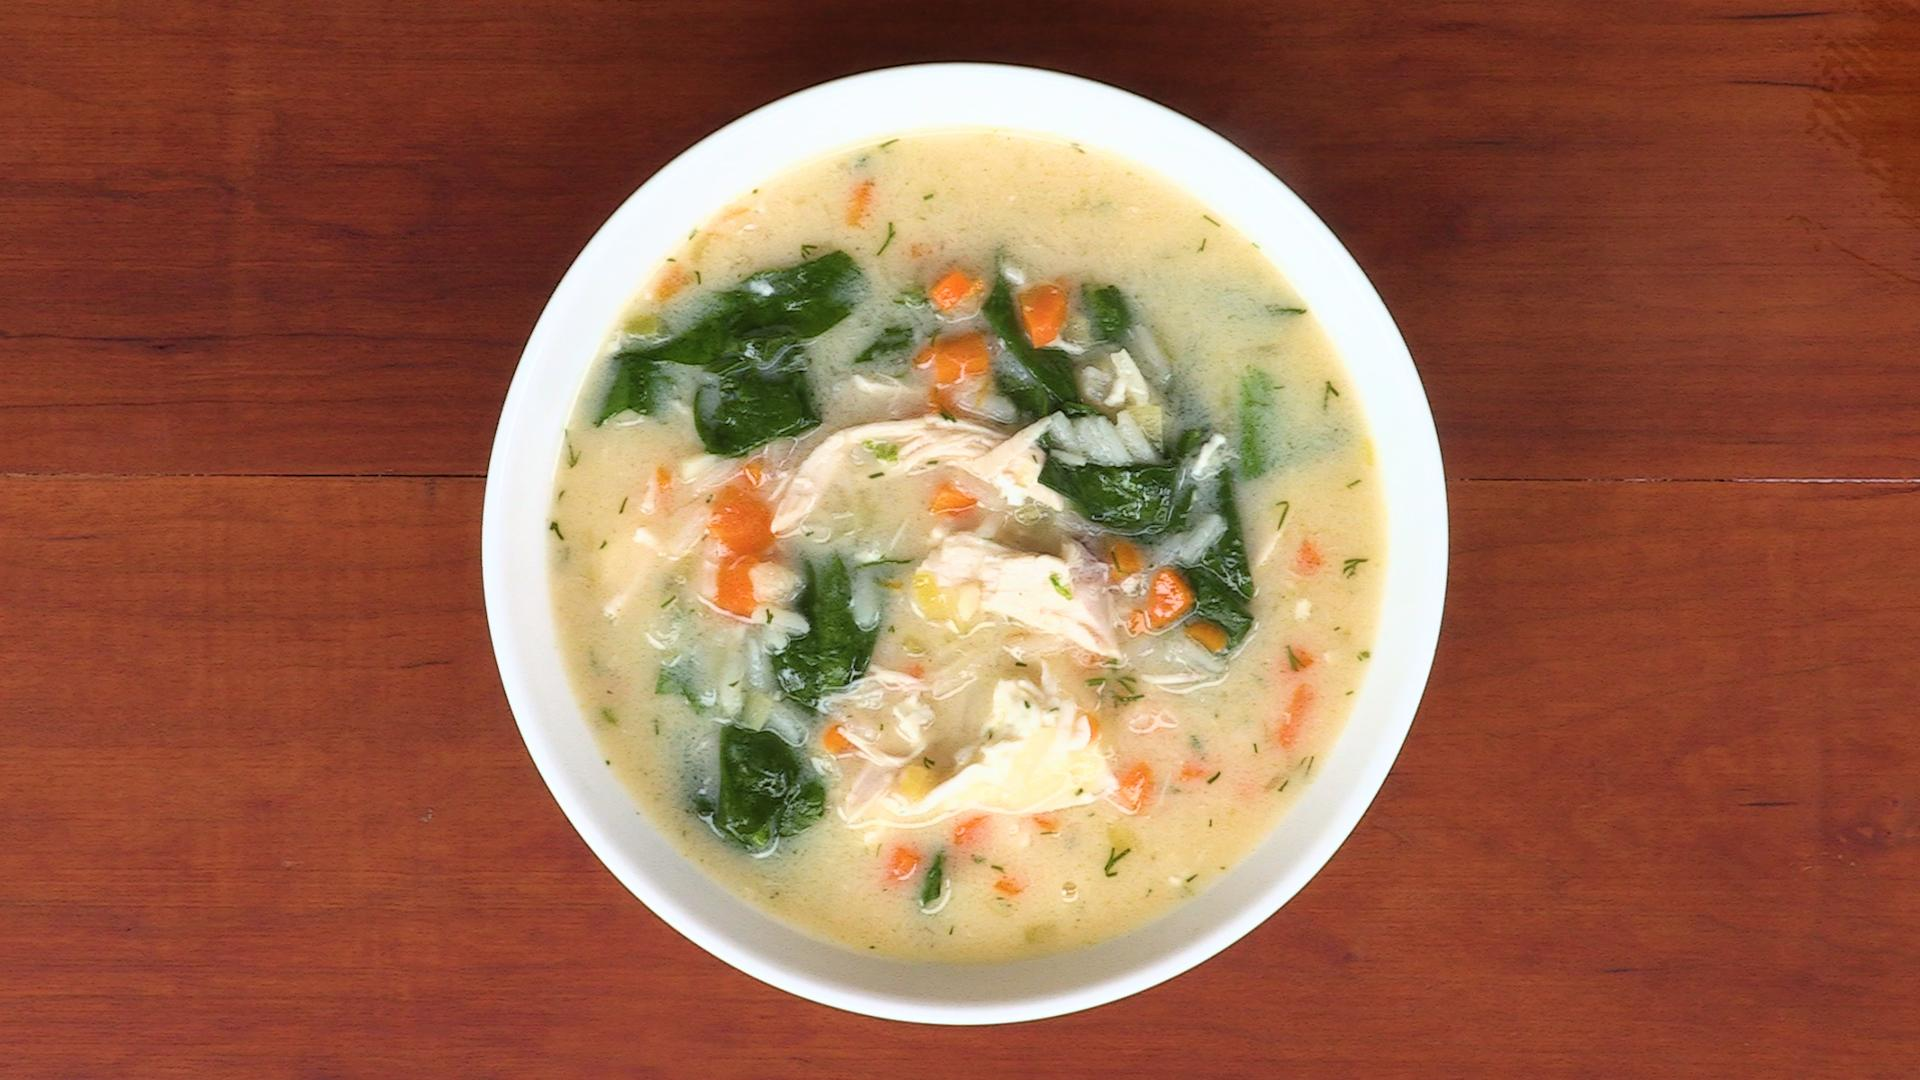 Lemony Chicken and Spinach Soup